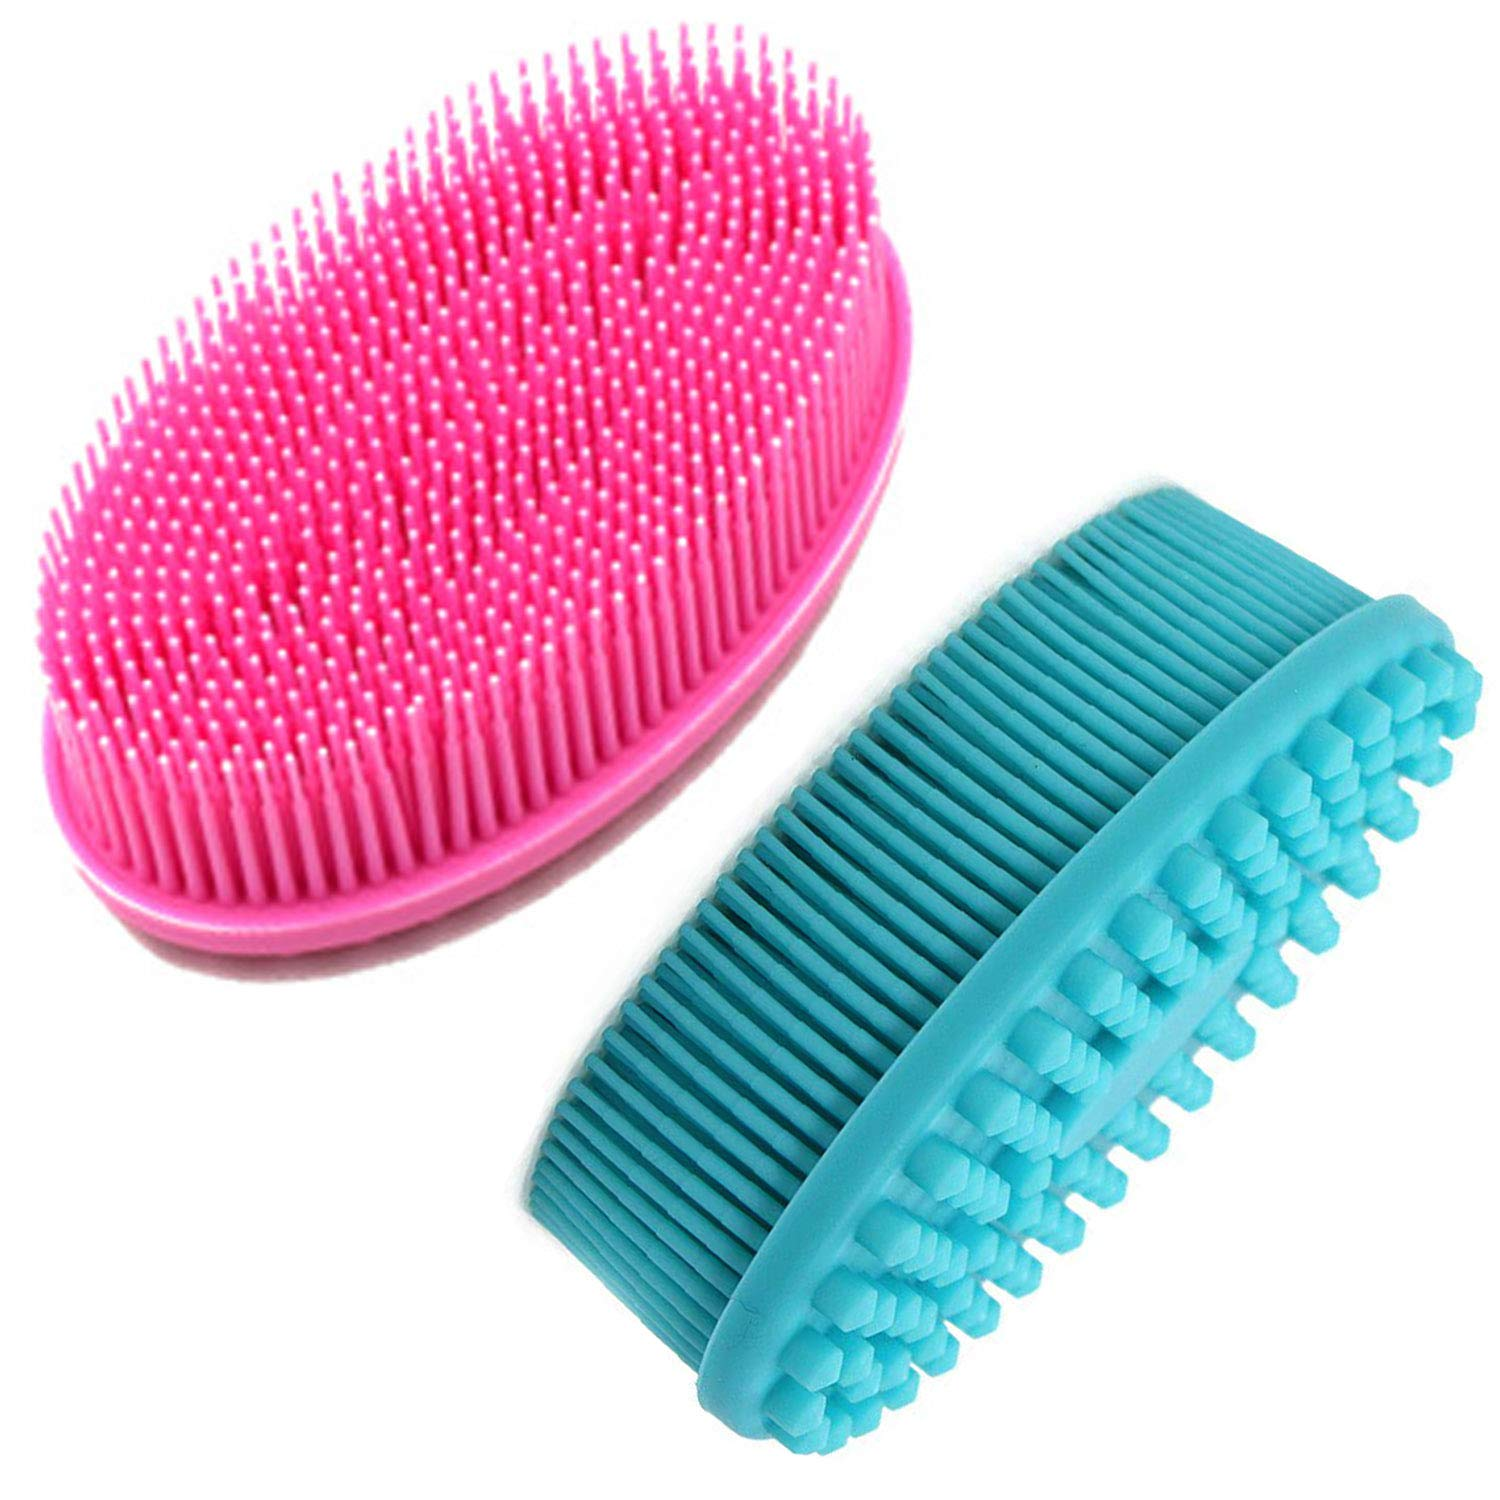 Silicone Body Scrubber Lowest Max 60% OFF price challenge 2 ABOLINE Show Exfoliating Pack